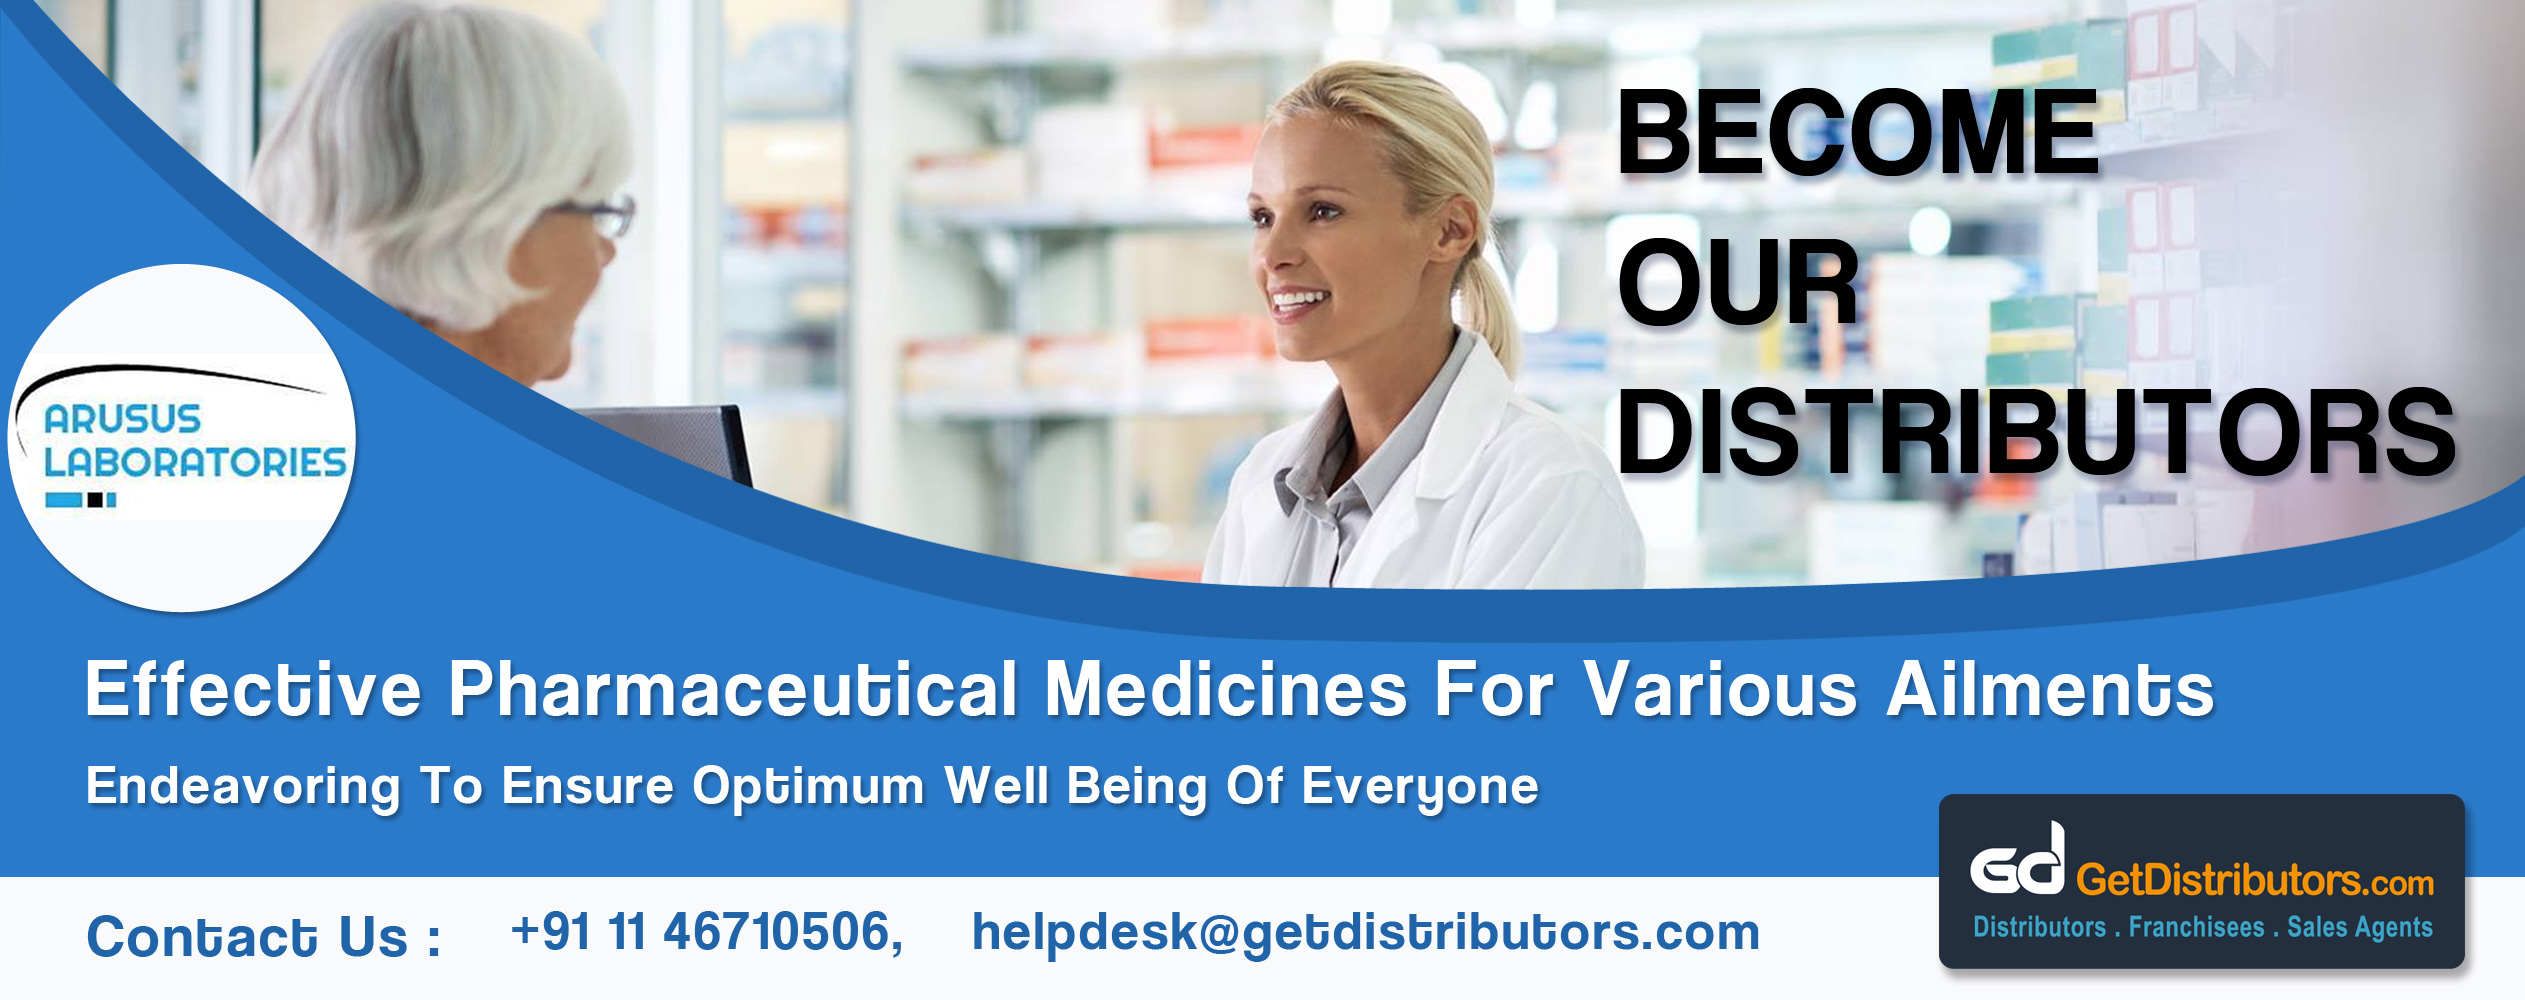 Arusus Laboratories requires distributors for pharmaceutical medicines